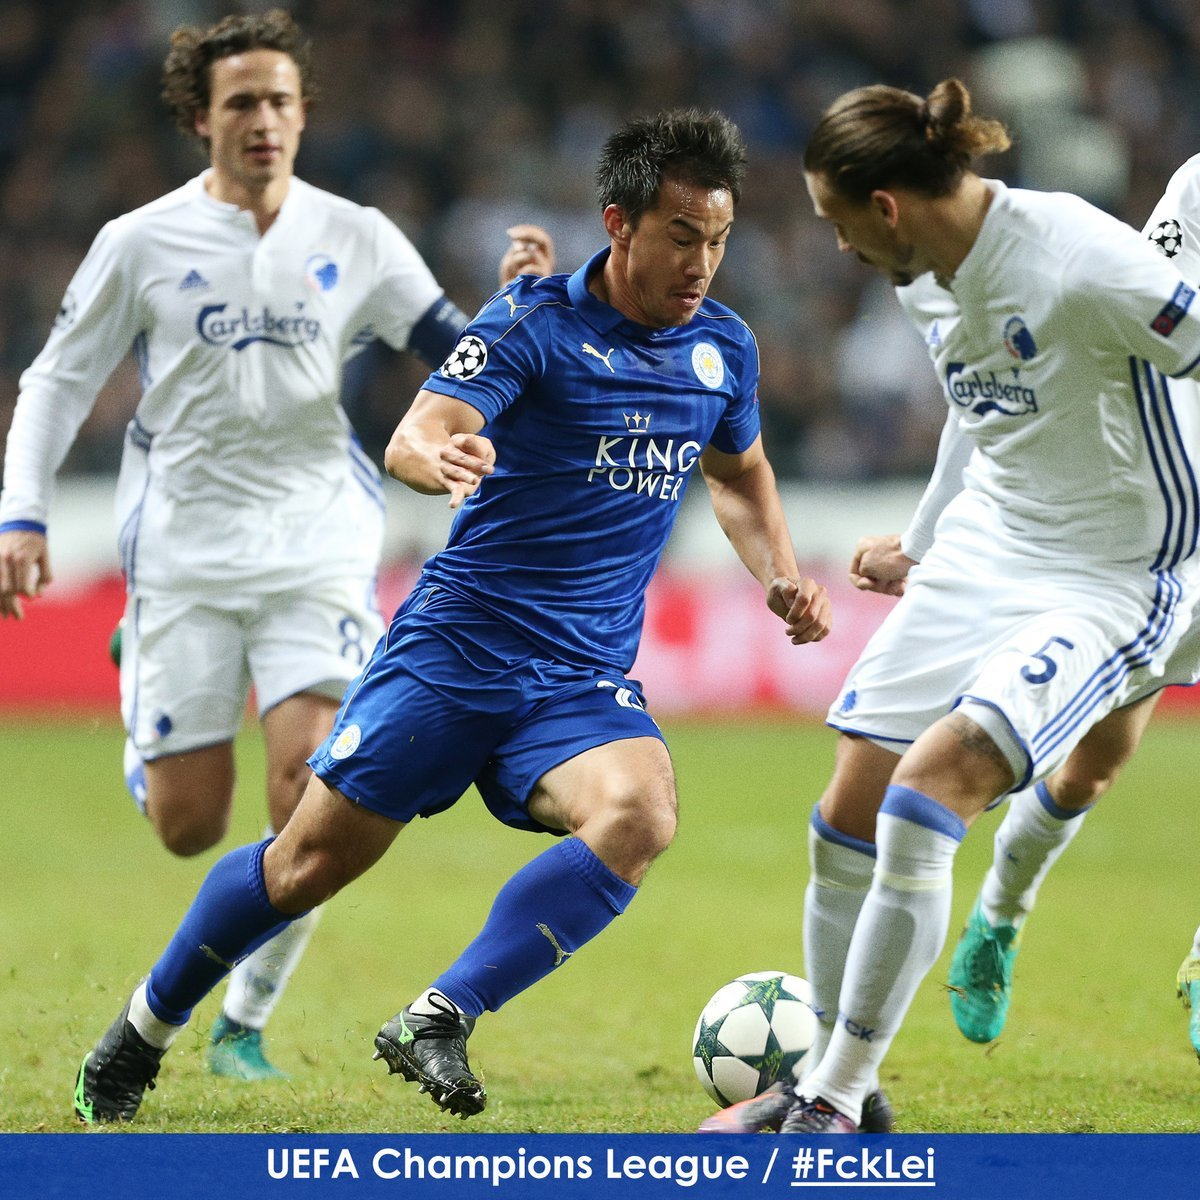 Substitute Shinji Okazaki drives at the FC Copenhagen defence as we enter the final stages here at Parken Stadium